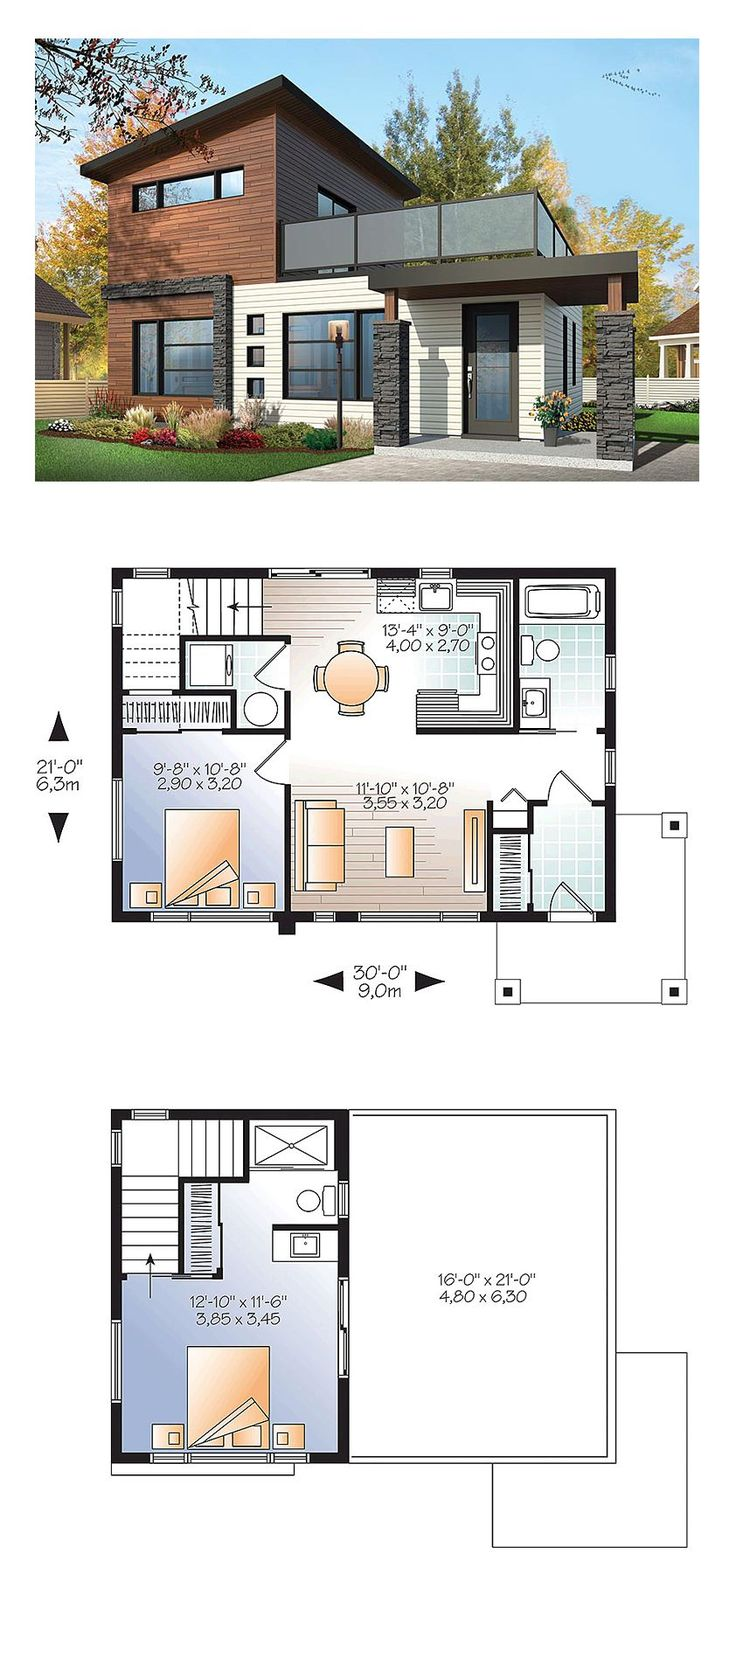 House Blueprint Images Of Best 25 Modern House Plans Ideas On Pinterest